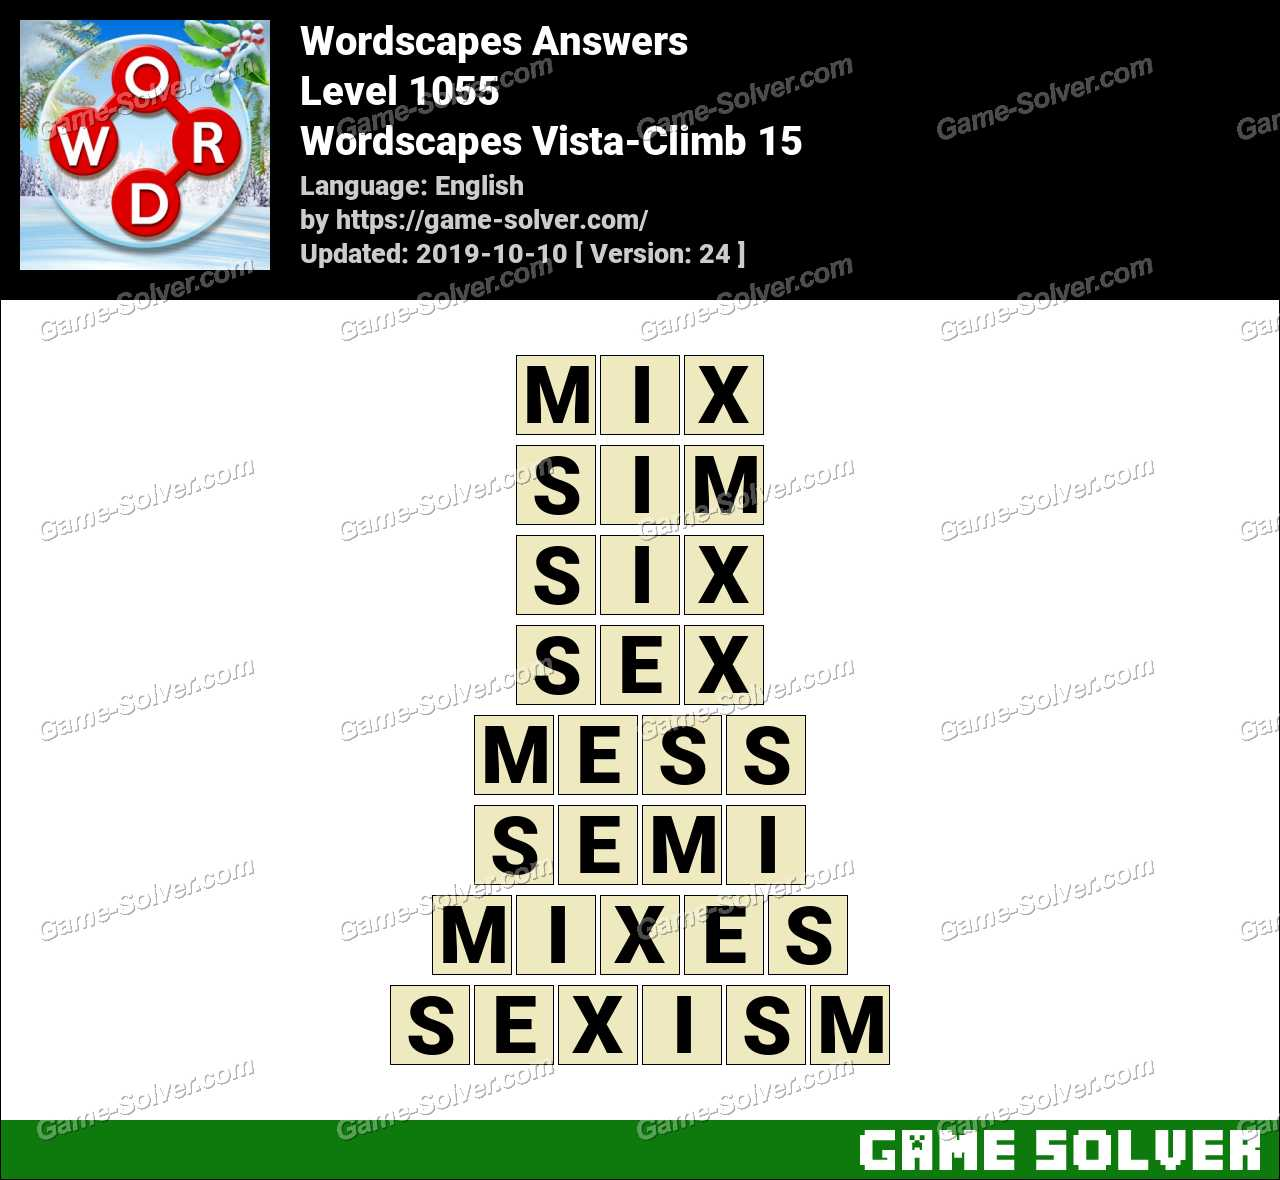 Wordscapes Vista-Climb 15 Answers